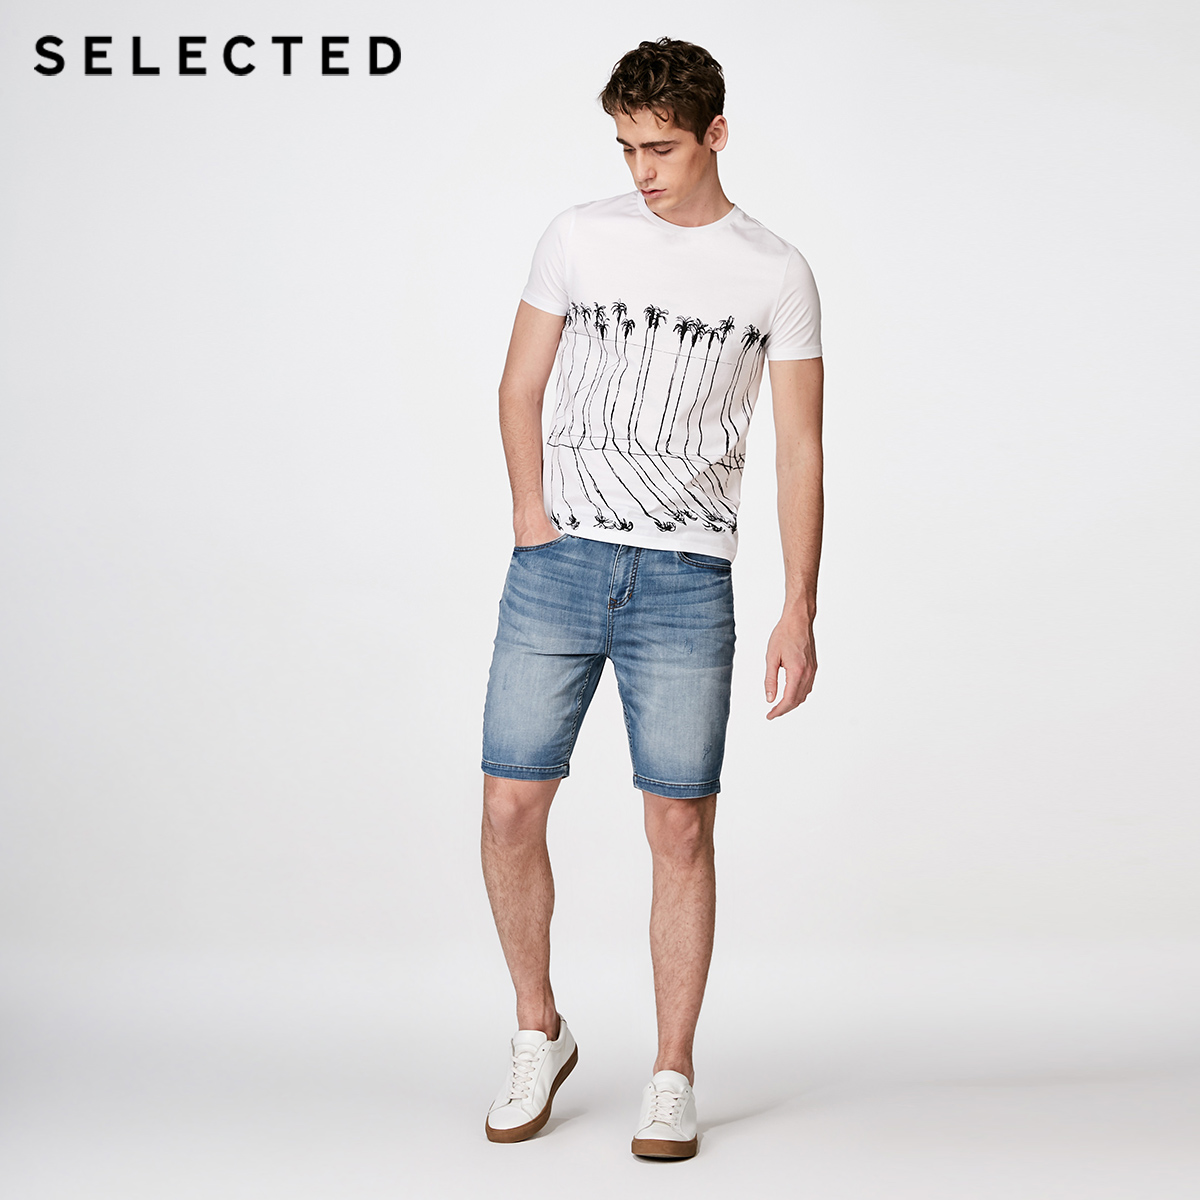 SELECTED 2019 Spring amp Summer Men Fashion T Shirt White Regular Fit Cotton Printed Short sleeved T shirt Men 4182T4560 in T Shirts from Men 39 s Clothing